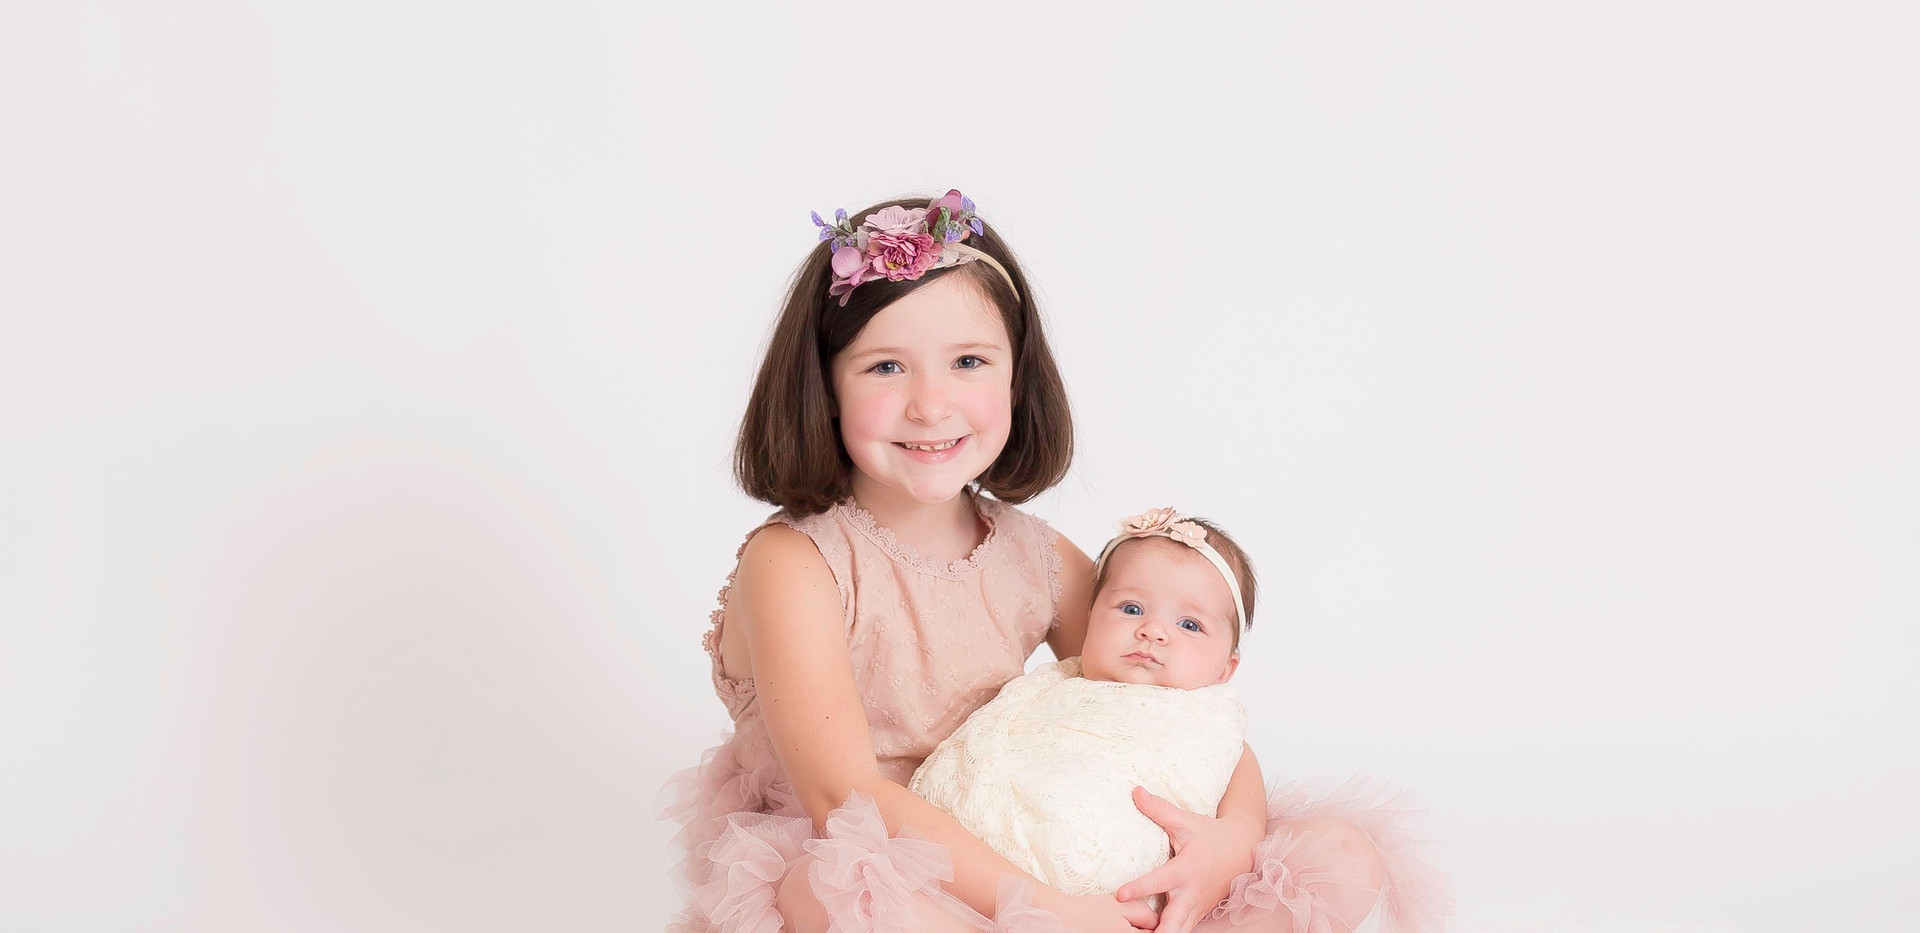 smiling girl with baby sister, Chattanooga family photo studio